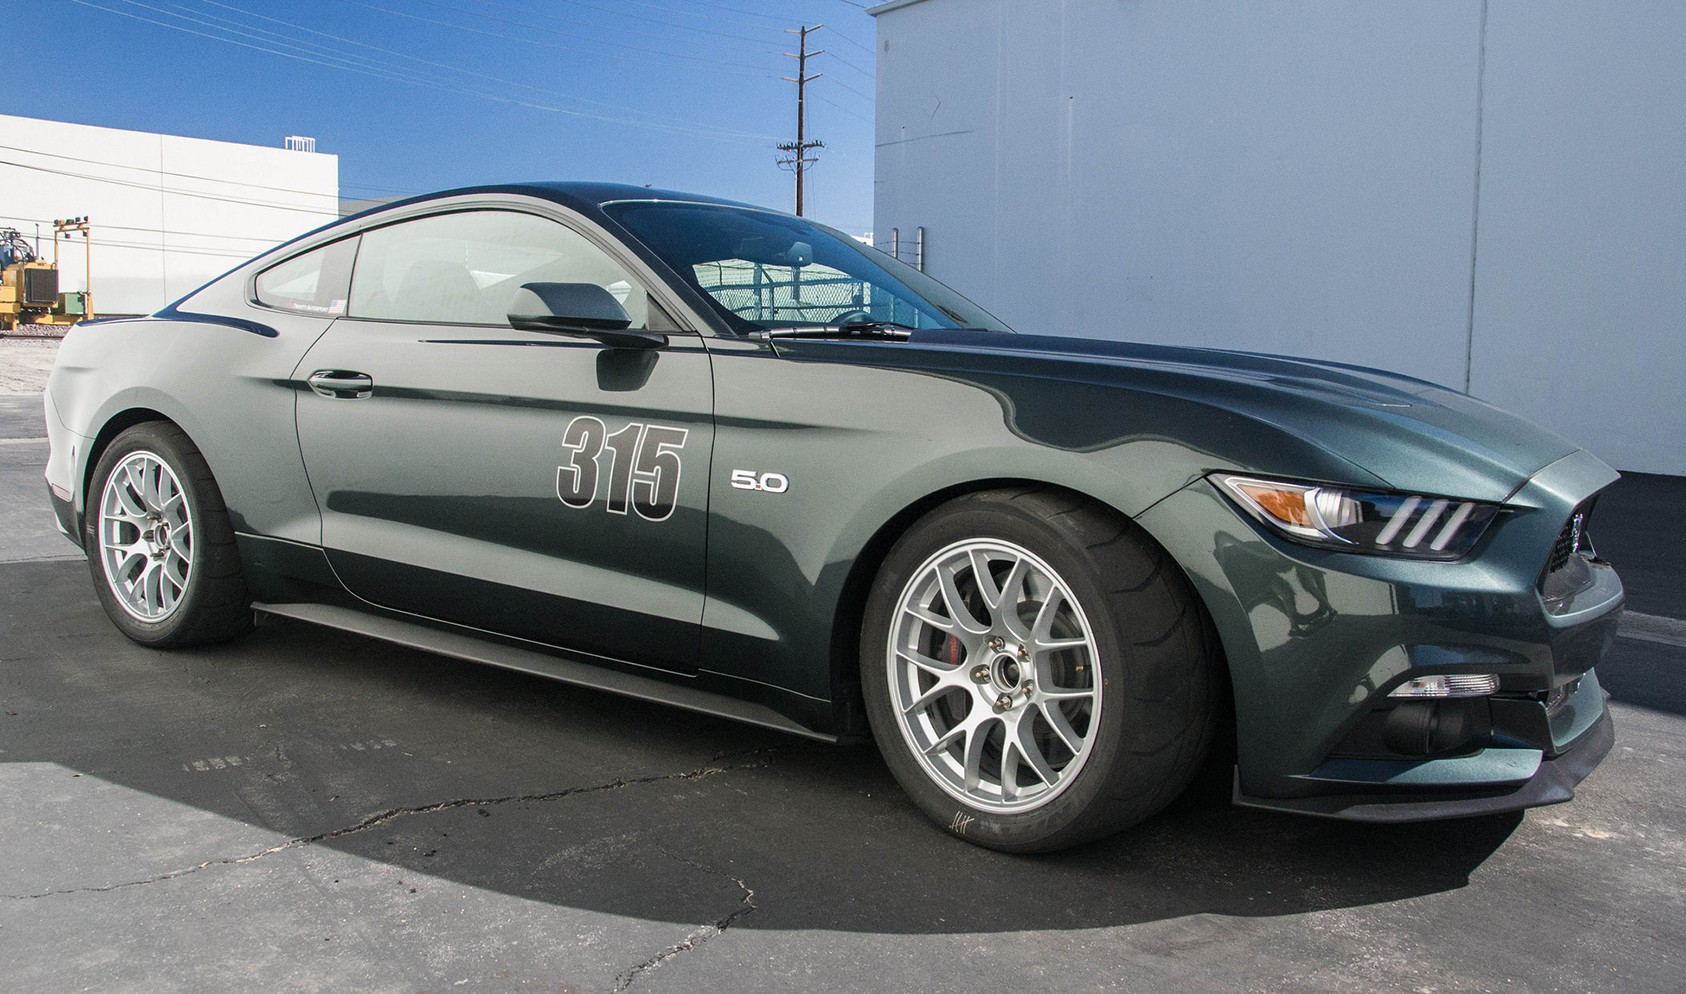 """S550 Square Fitment<br />Wheels: 18x10"""" ET43 Race Silver EC-7<br />Tires: 305/35-18 Nitto NT01"""